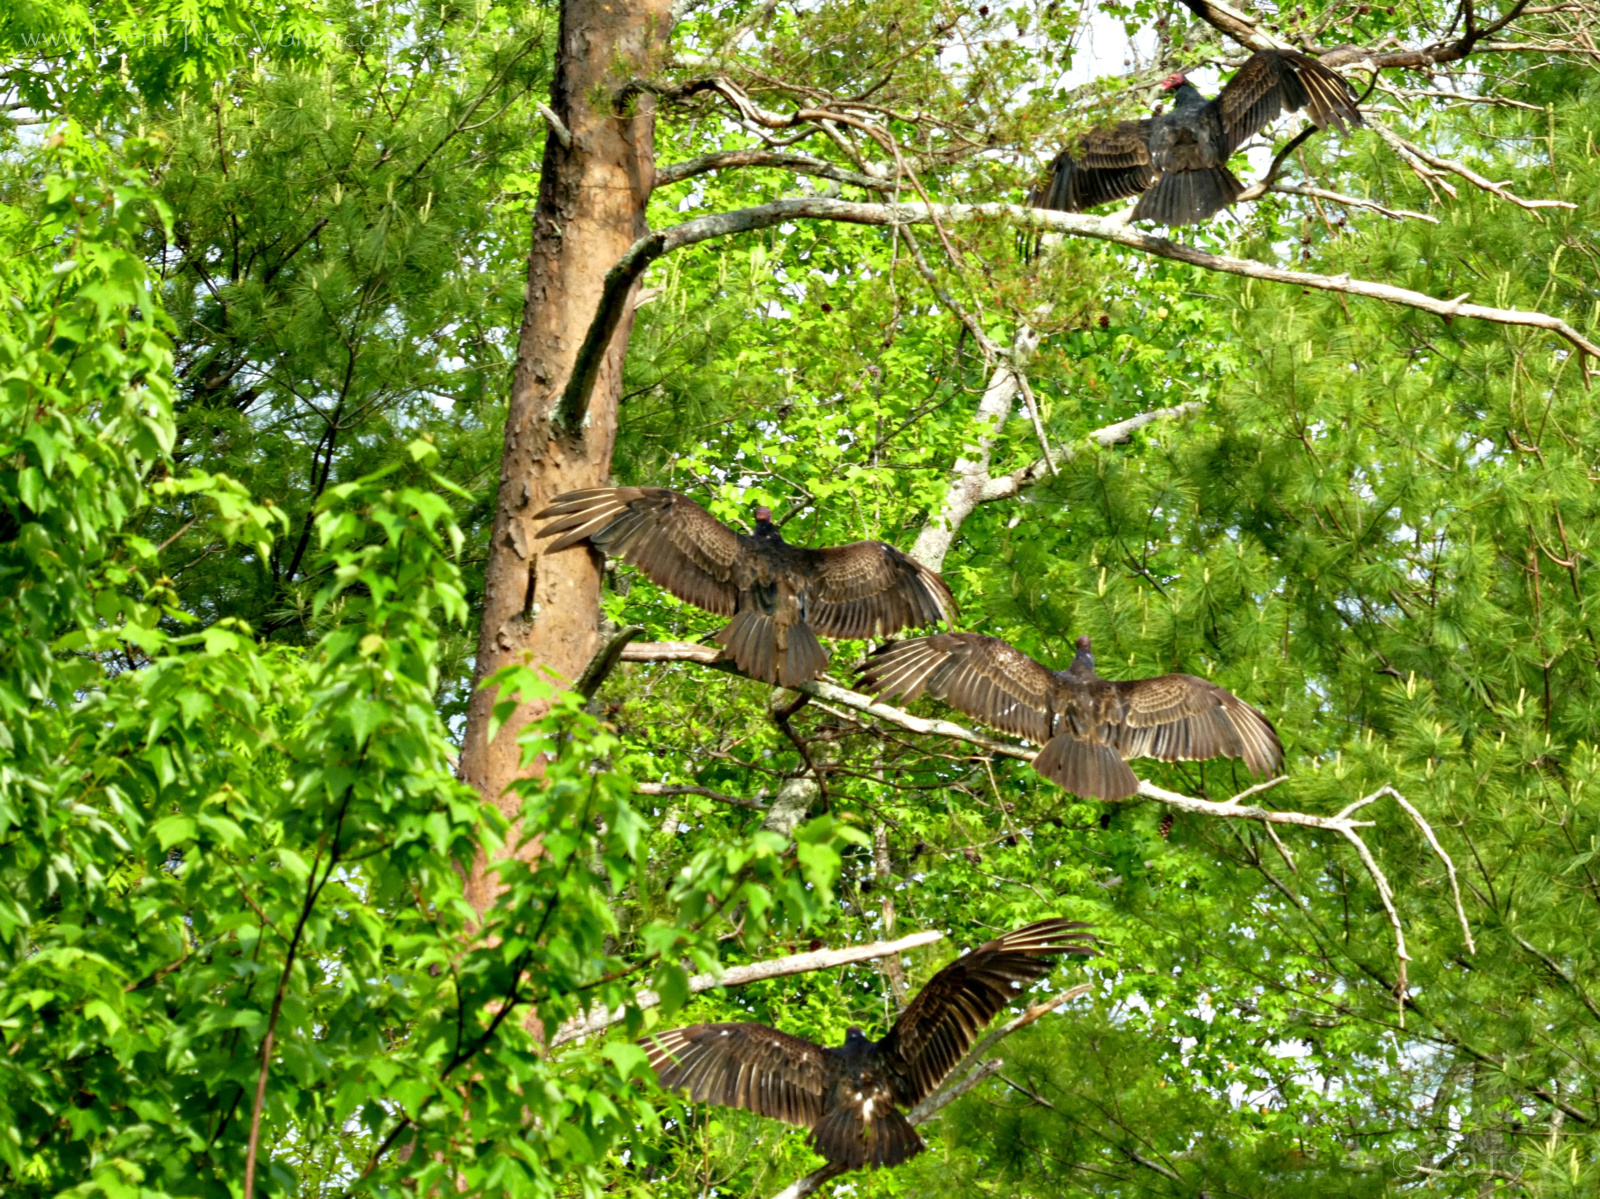 April 28, 2019 - Turkey Vultures in Bent Tree